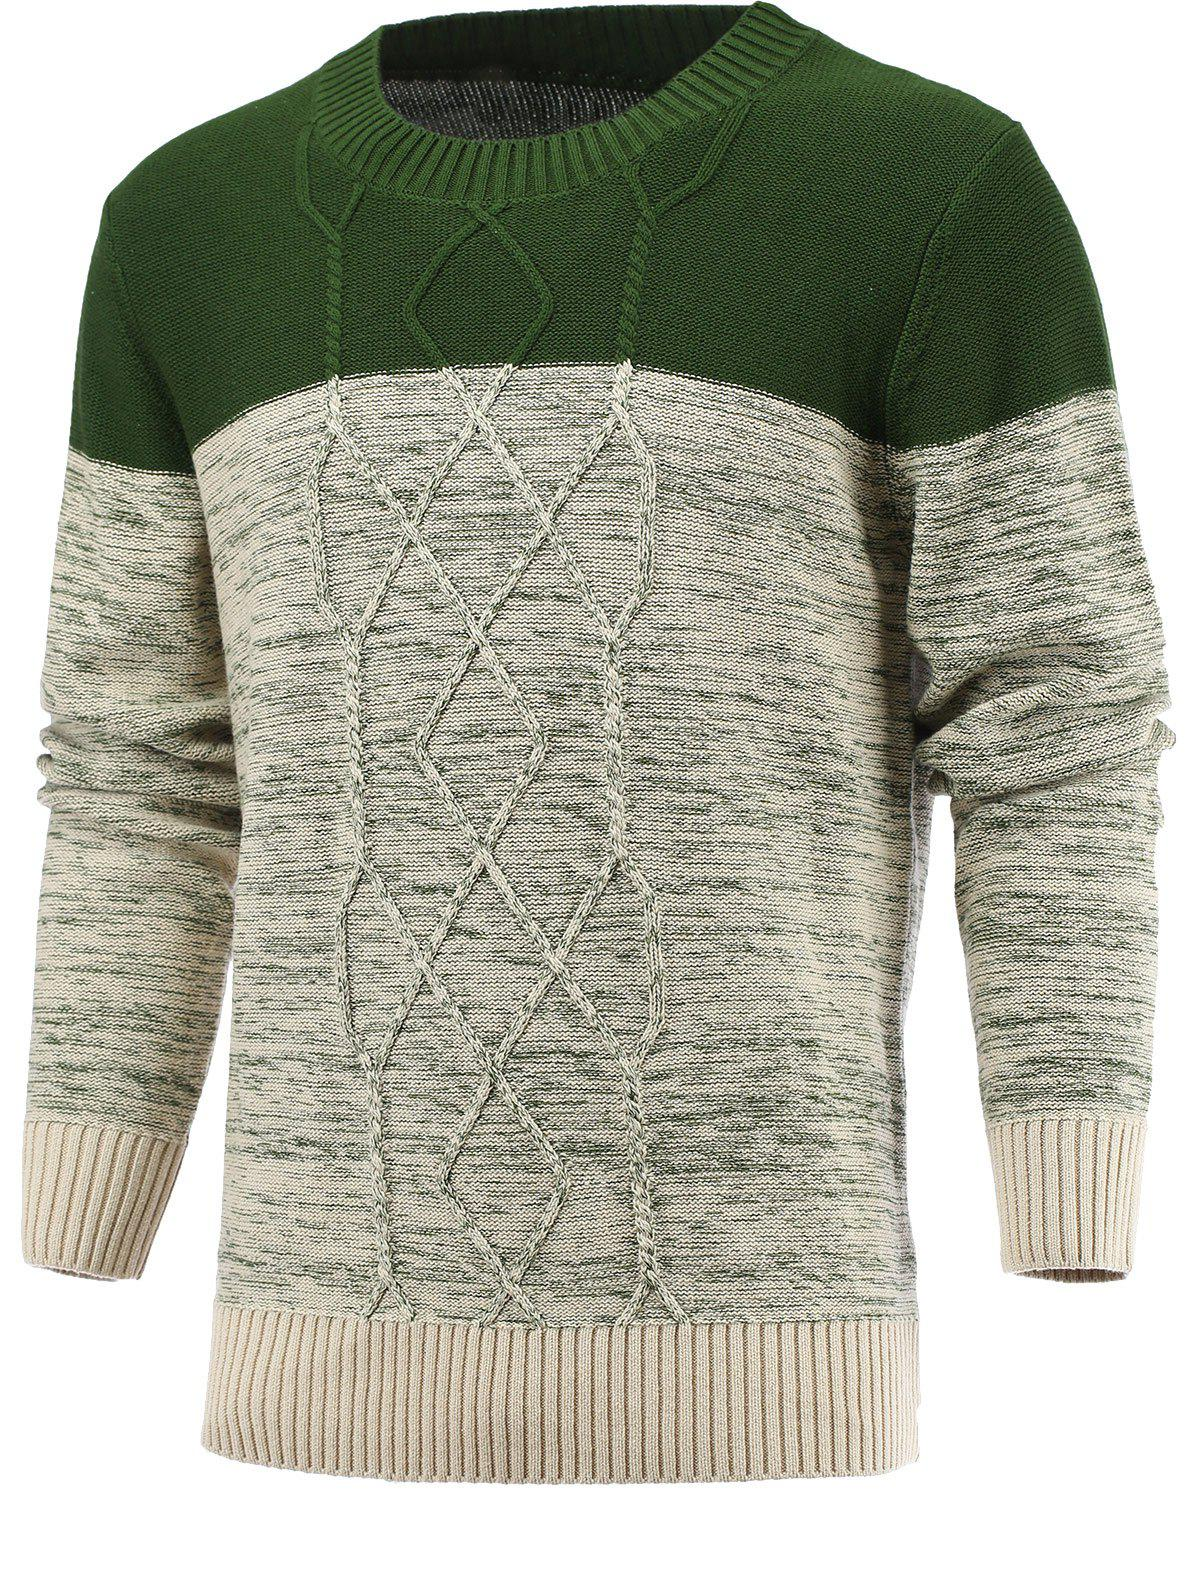 Round Neck Geometric Knitted Spliced Sweater - DEEP GREEN 2XL